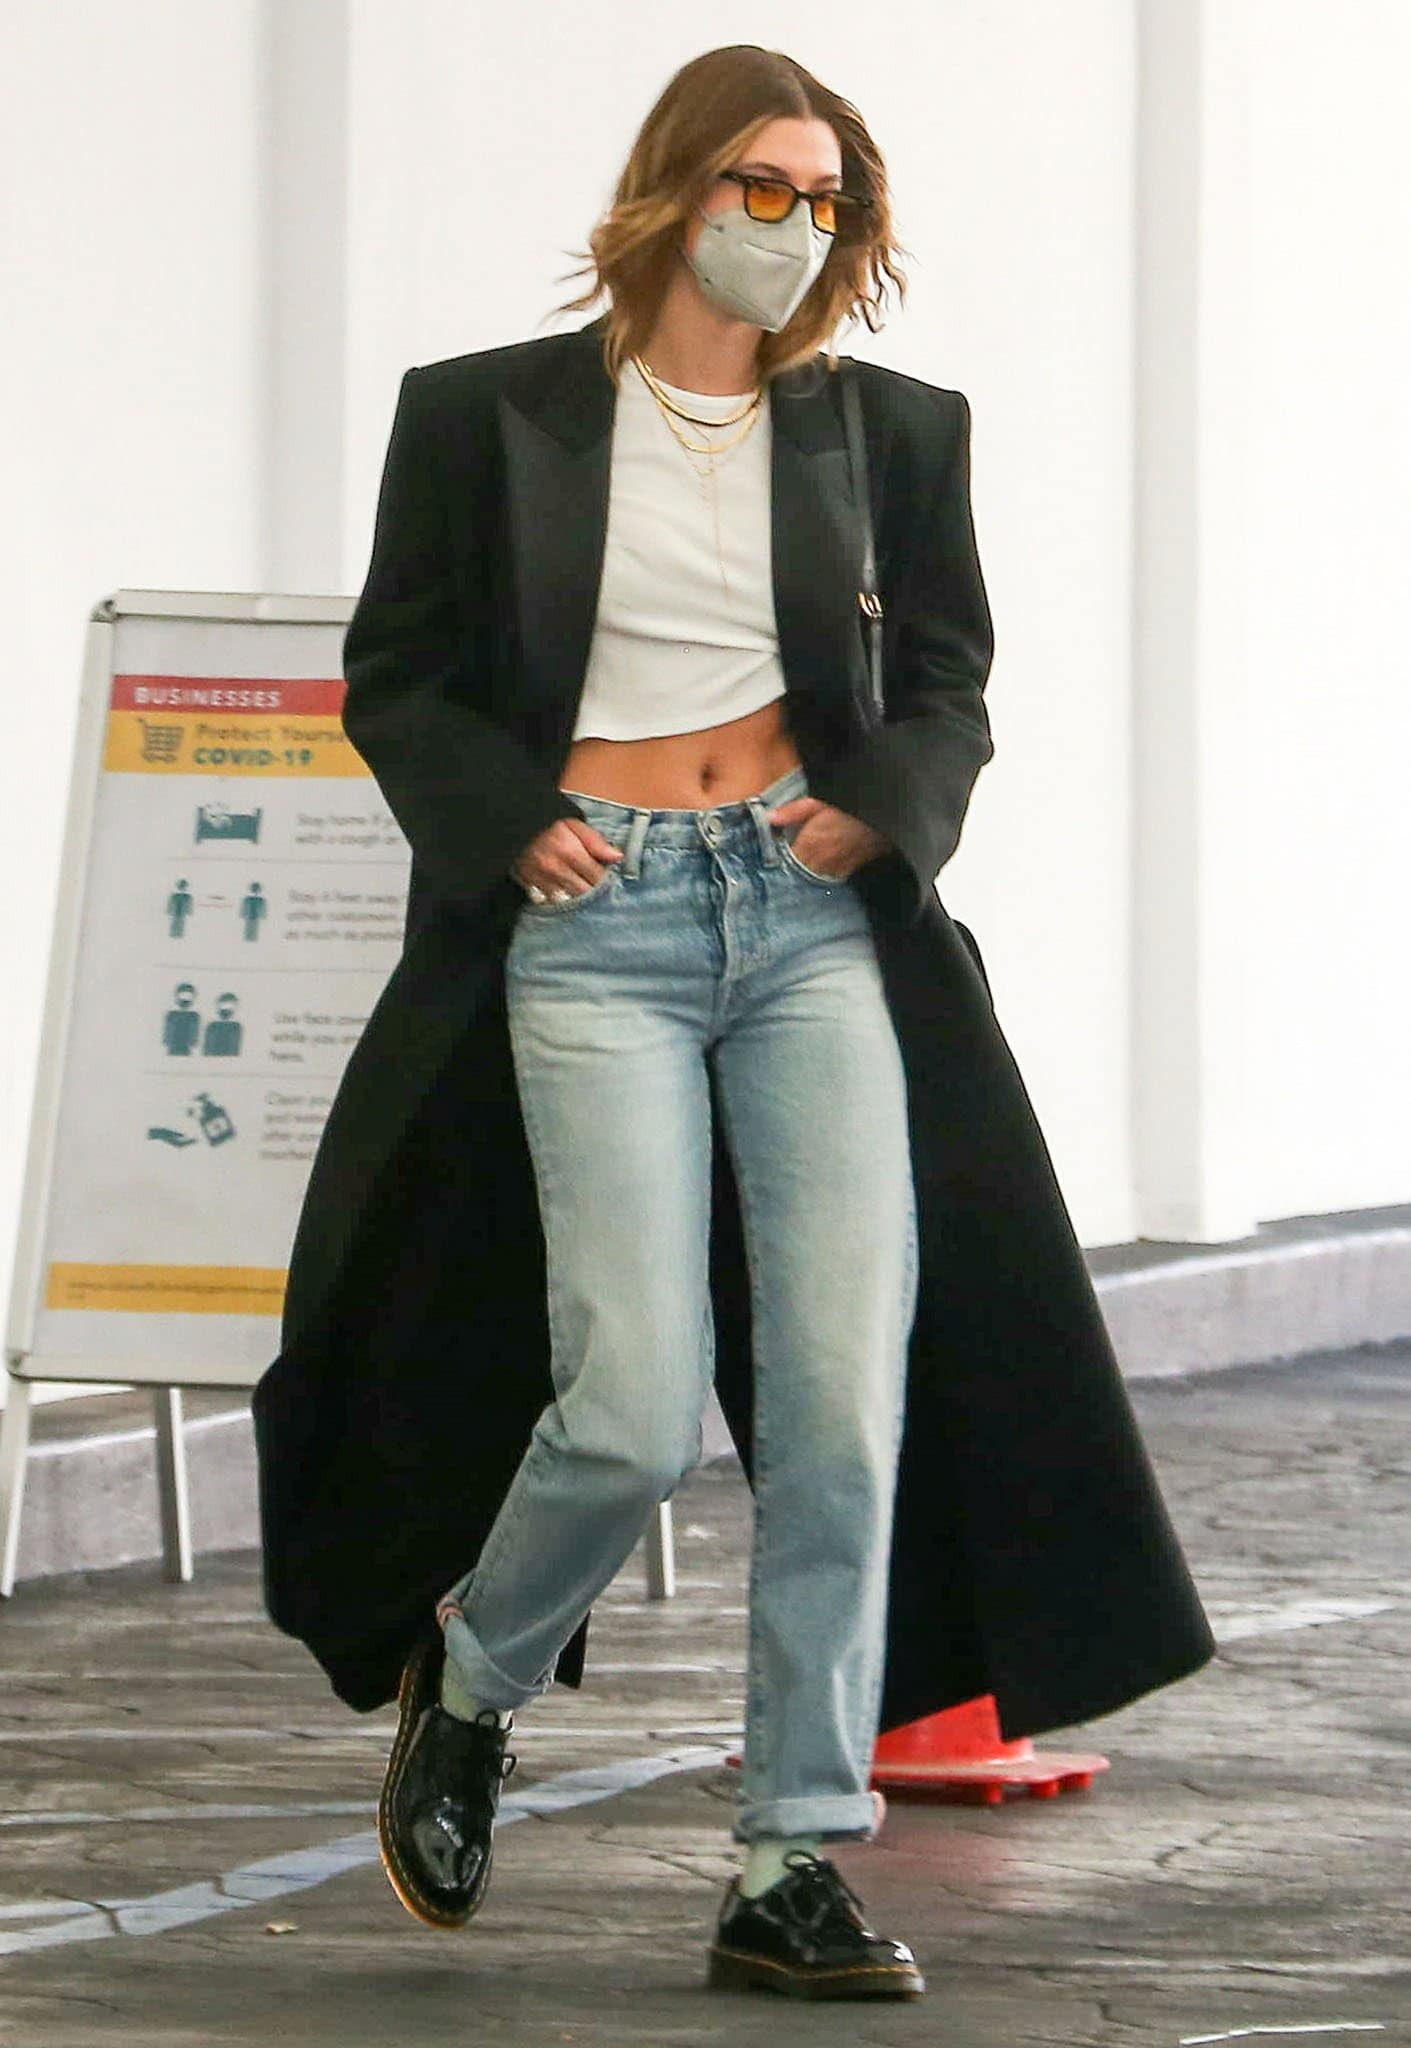 Hailey Bieber in a Magda Butrym coat, Acne jeans, and an Eterne white cropped top